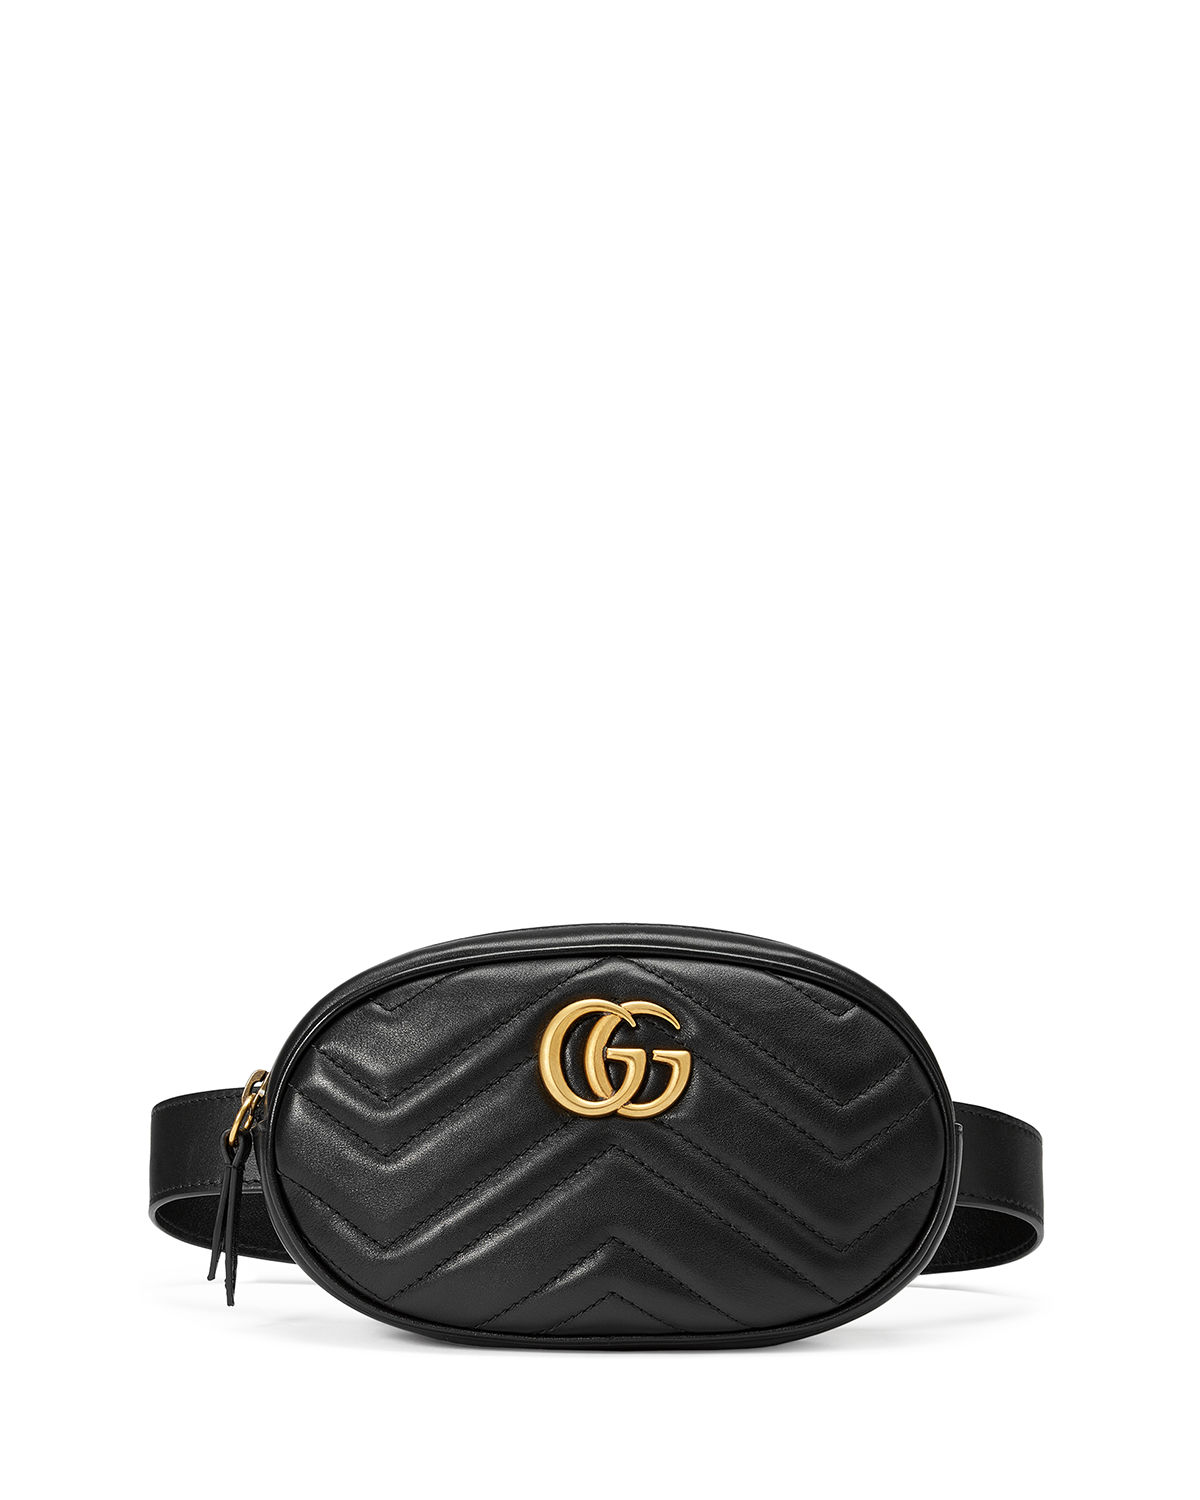 7b12e13dad5 Gucci GG Marmont Small Matelasse Leather Belt Bag